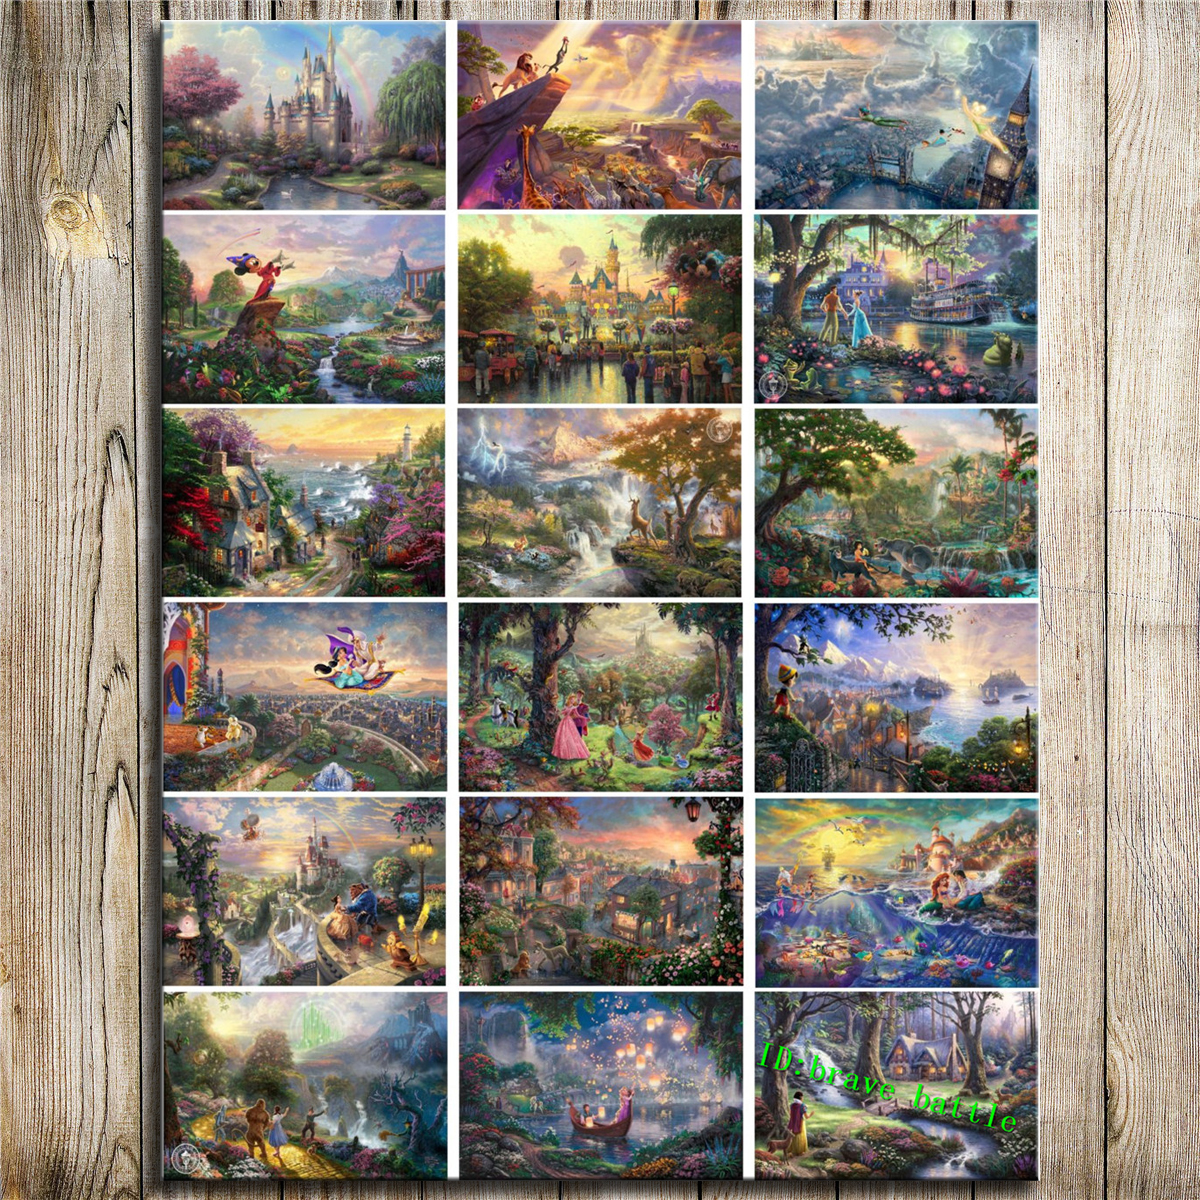 Thomas Kinkade Christmas.Us 12 76 42 Off Thomas Kinkade Christmas Bambi First Year Cinderella Wishes Princess Elves Fairy Hd Print Canvas Home Decor Art Oil Painting In